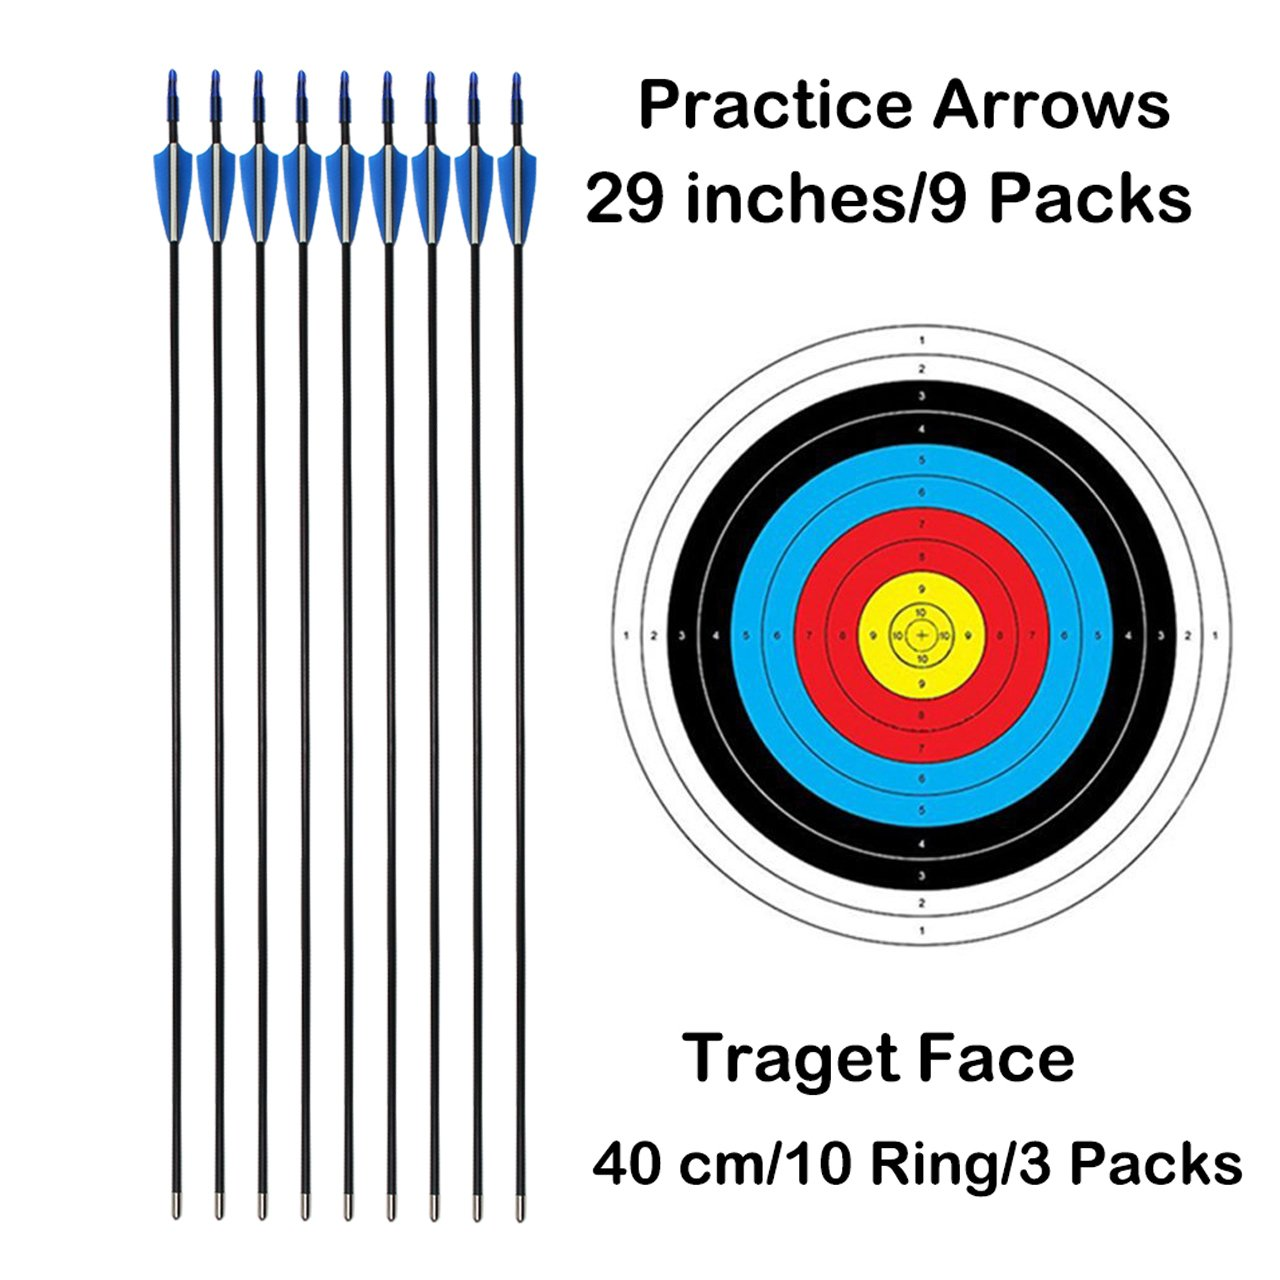 SinoArt Recurve Bow Adjustable Length 48.5''-50'' Draw Weight 14-16 Lb Right and Left Hand with 9 Arrows and 3 Target Faces by SinoArt (Image #3)